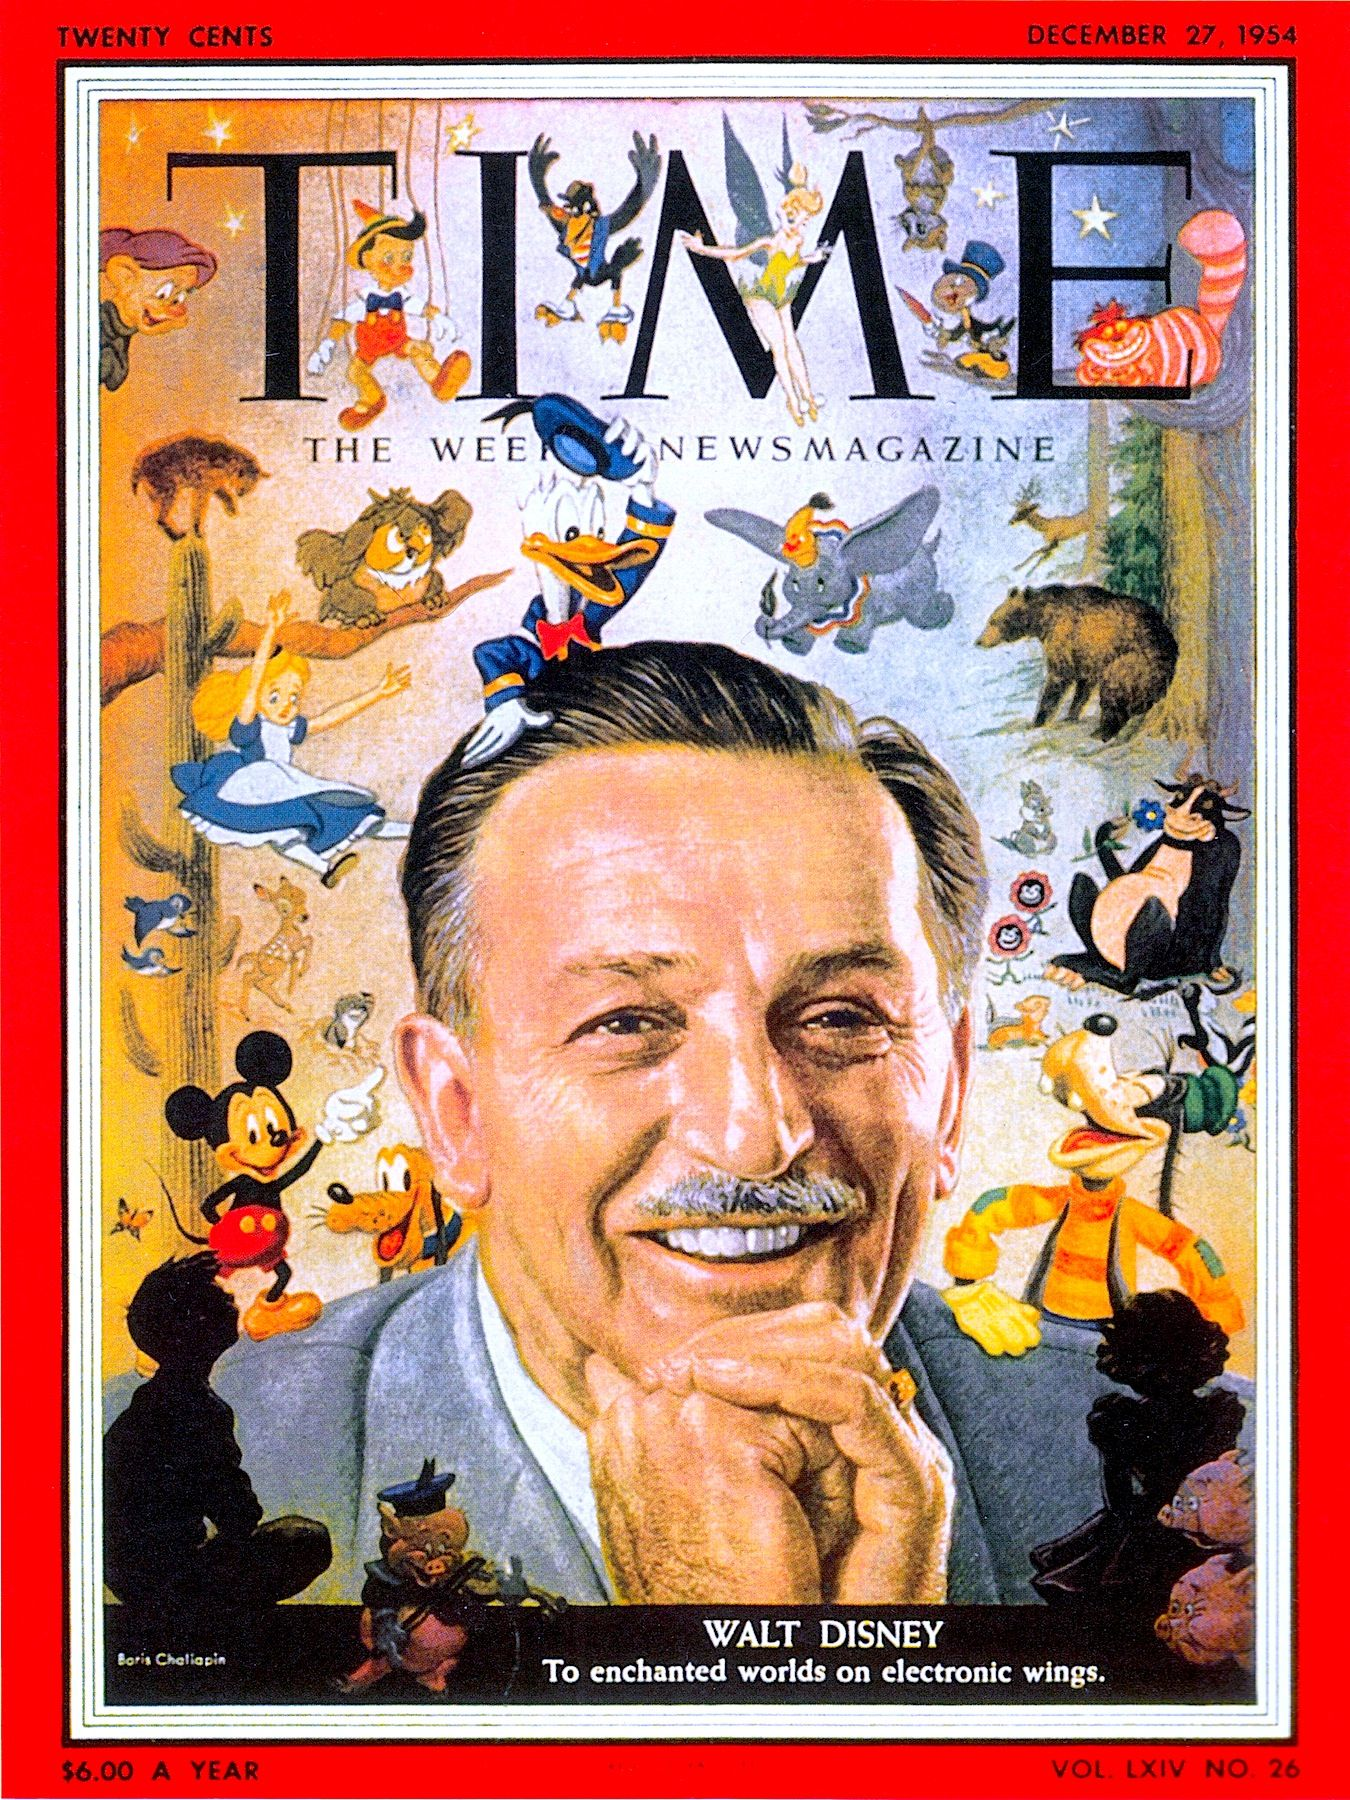 Cute drawing animal 183 kim kardashian at the beach 183 183 mom stress - Walt Disney On Time Magazine Cover Dec 27 1954 Illustration By Boris Chaliapin From